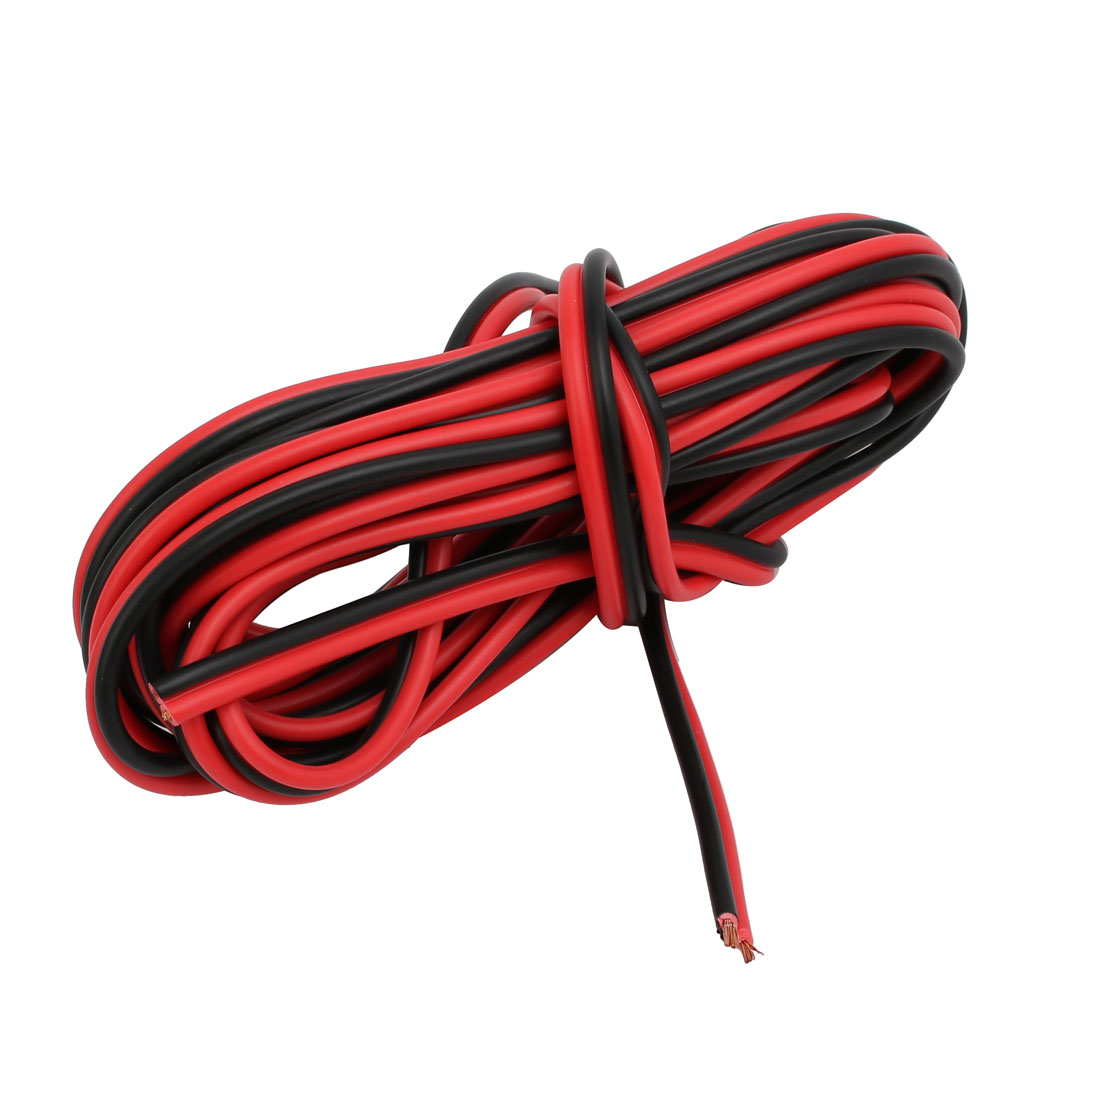 1.2mm2 Indoor Outdoor PVC Insulated Electrical Wire Cable Black Red 4 Meter